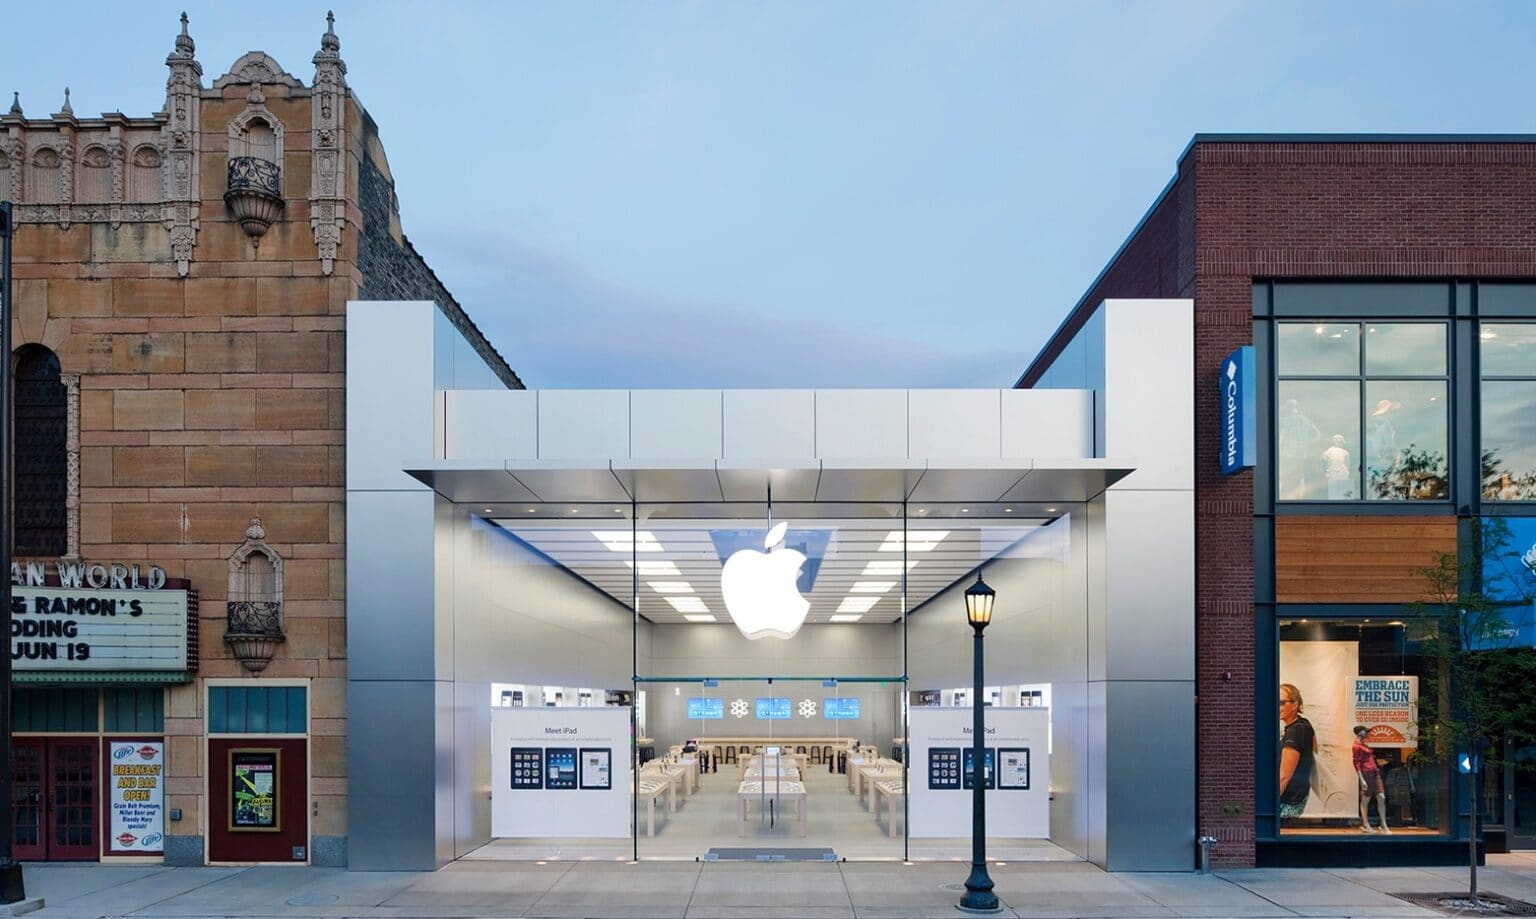 Say goodbye to the Uptown Apple Store in Minneapolis.